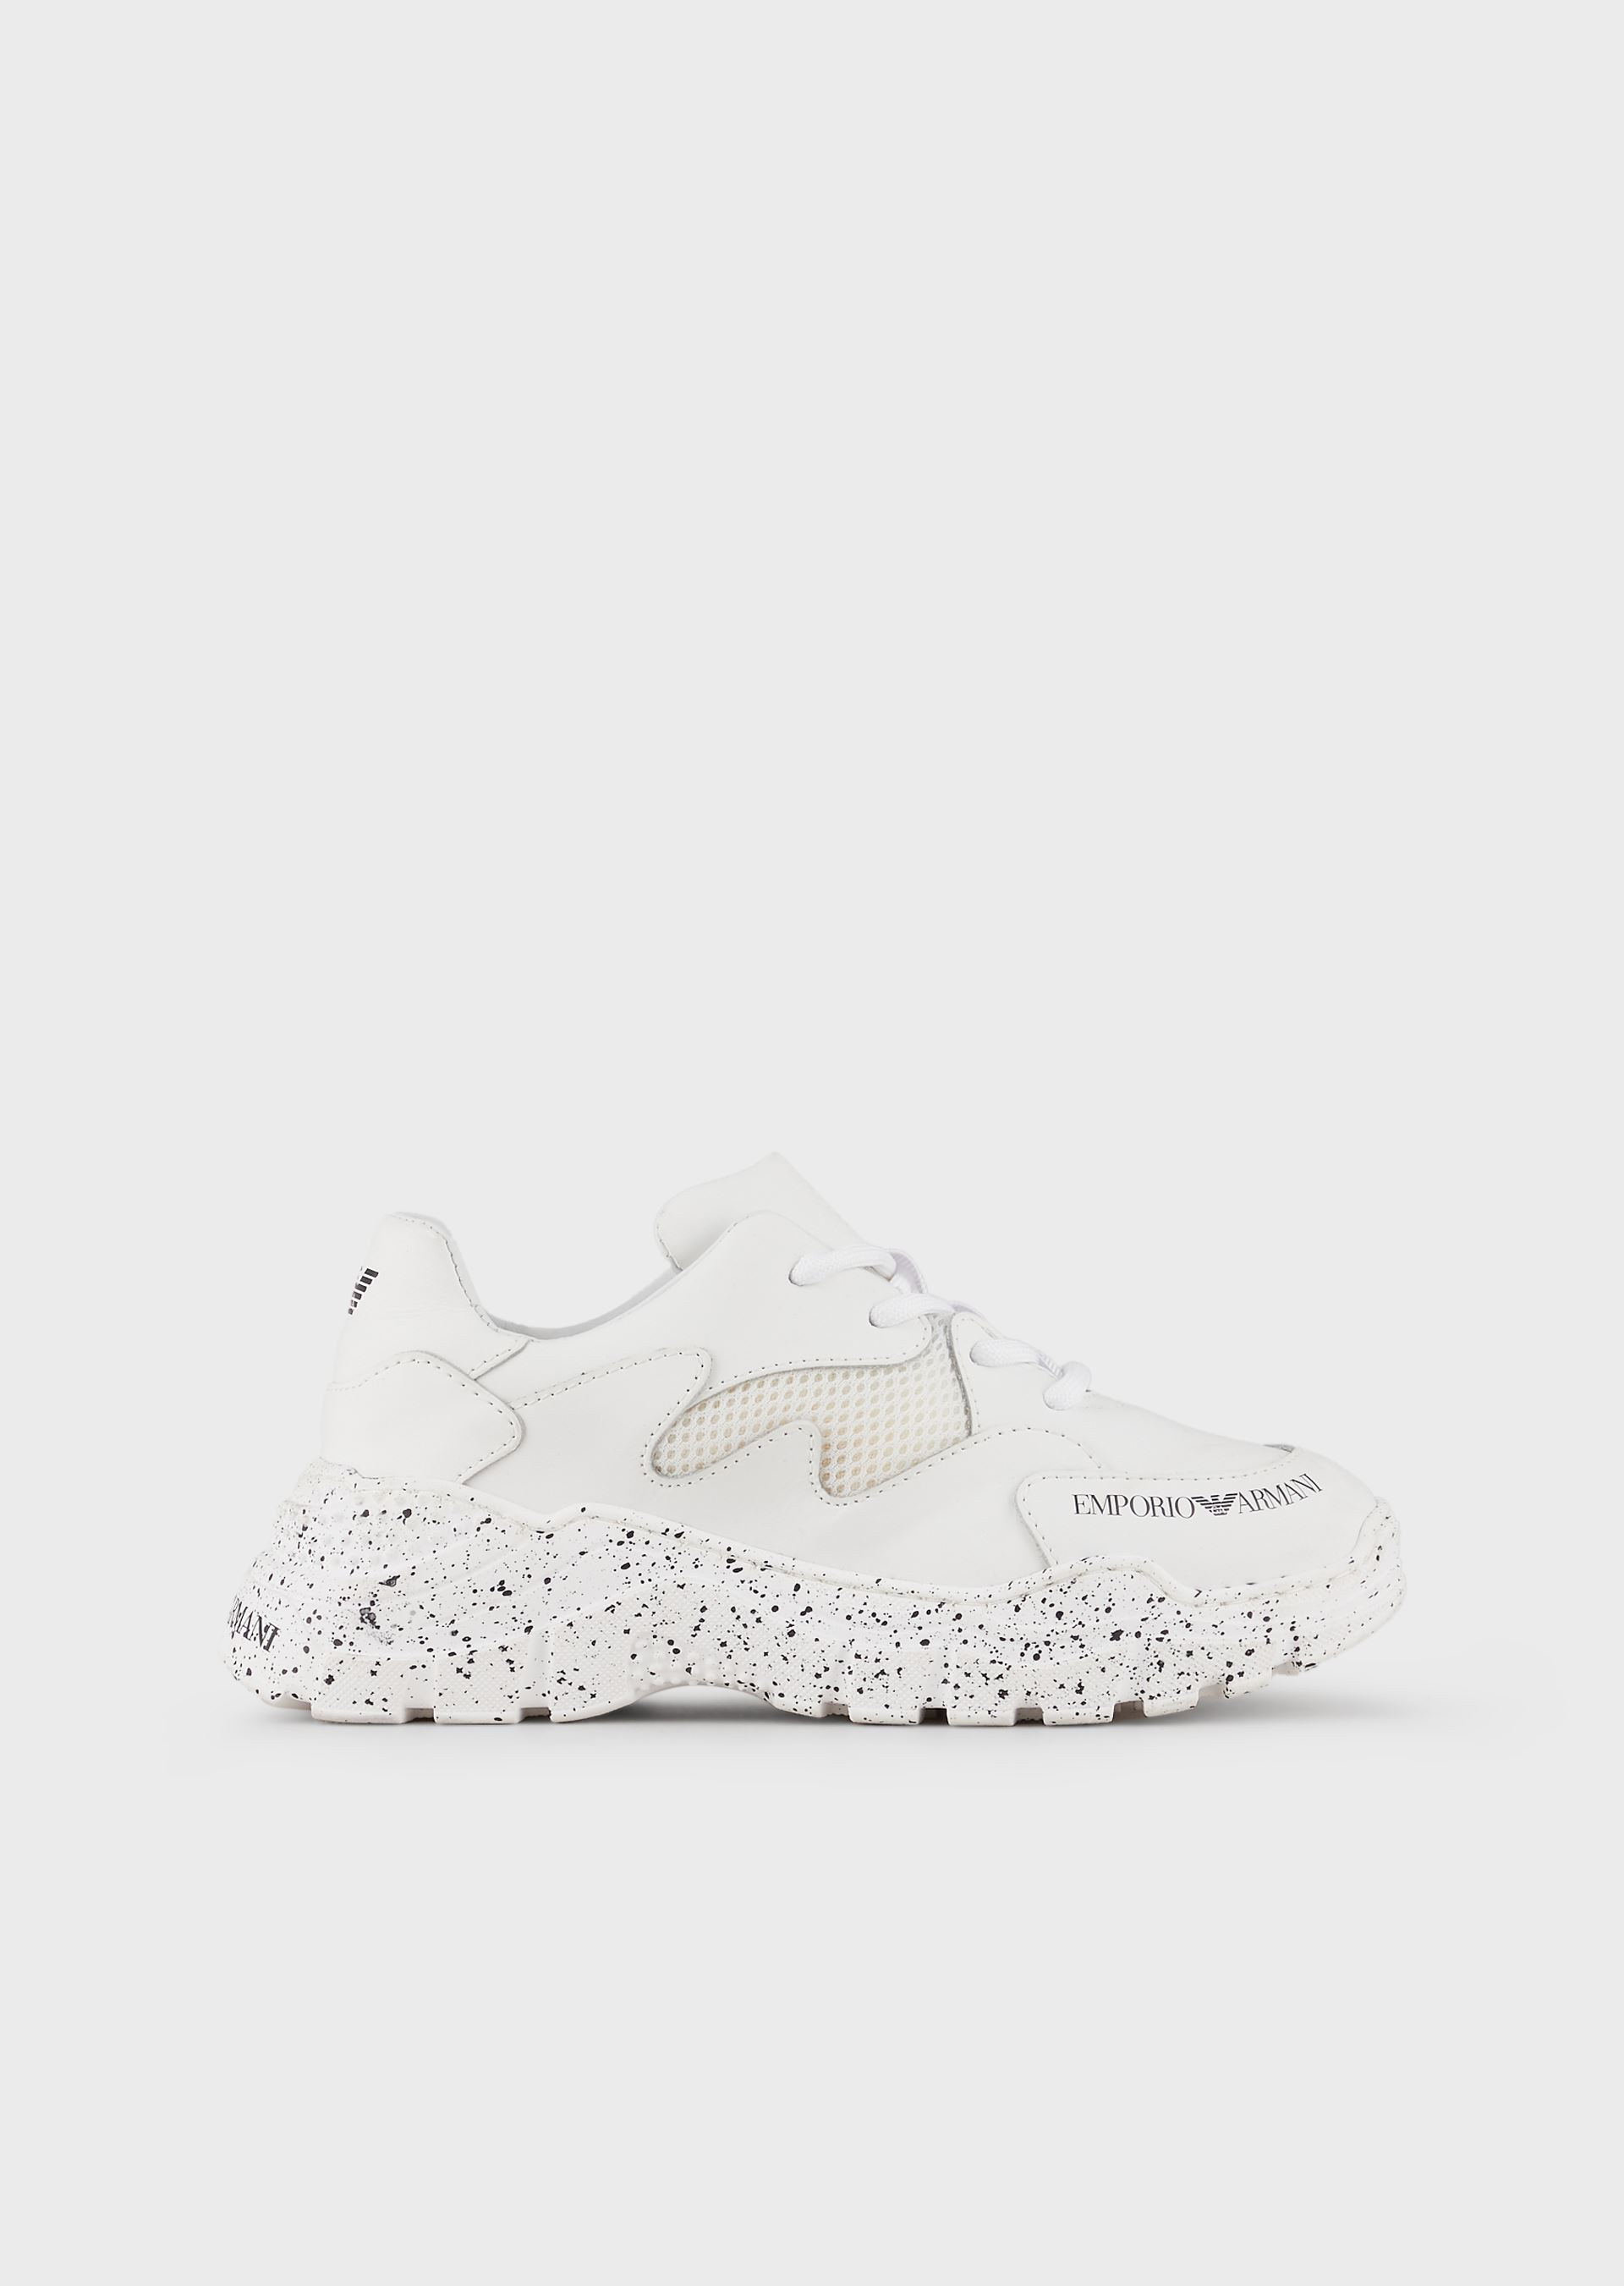 EMPORIO ARMANI Leather-and-mesh sneakers with graffiti soles